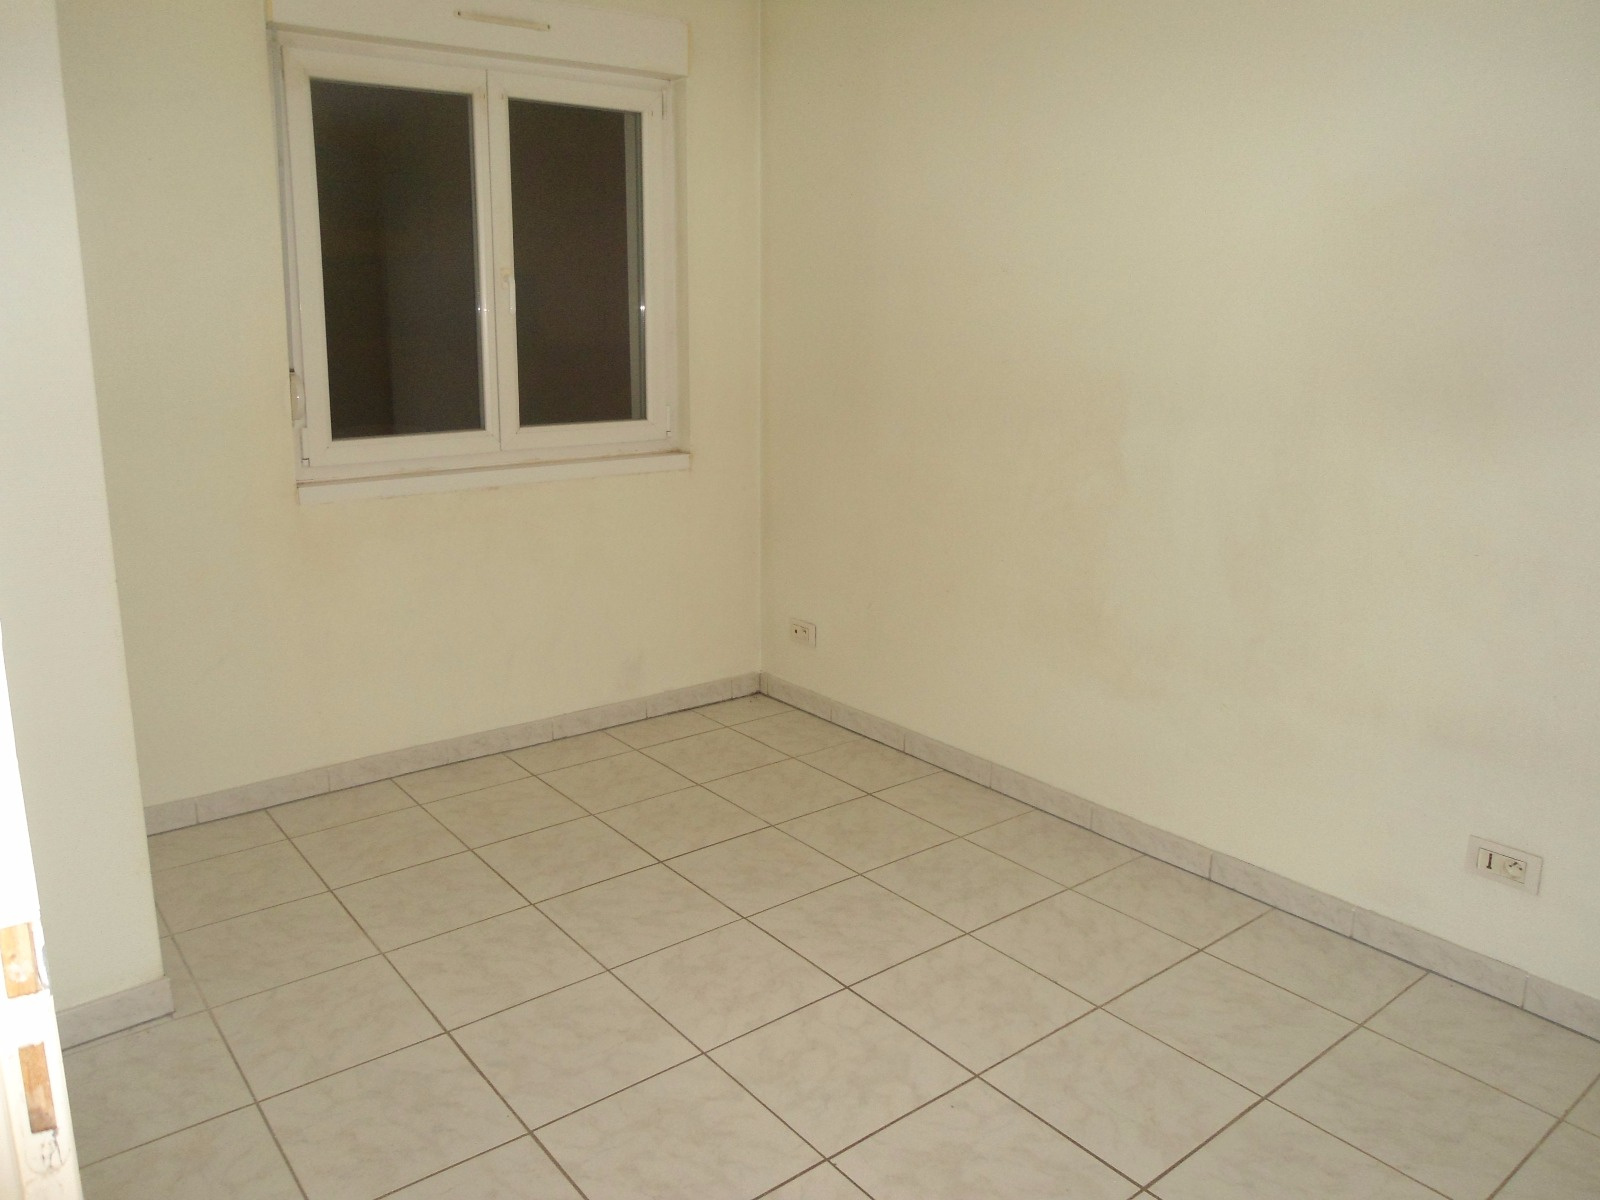 Vente bel appartement en rdc theding for Vente appartement rdc